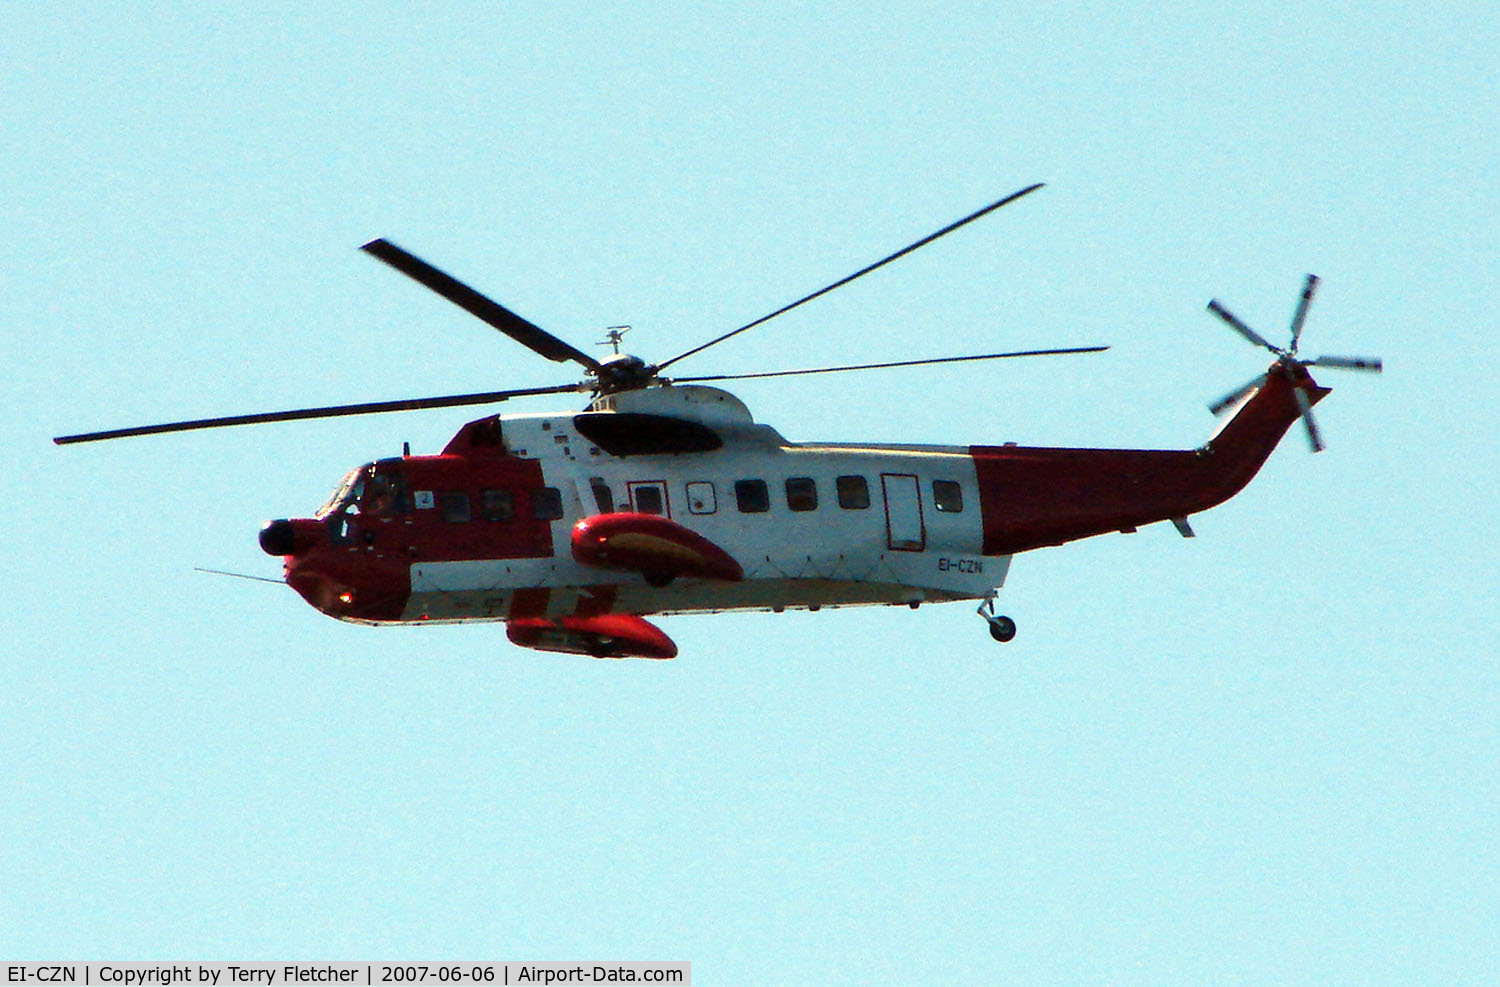 EI-CZN, 1974 Sikorsky S-61N C/N 61740, Sikorsky S61N patrolling the Scottish coastline